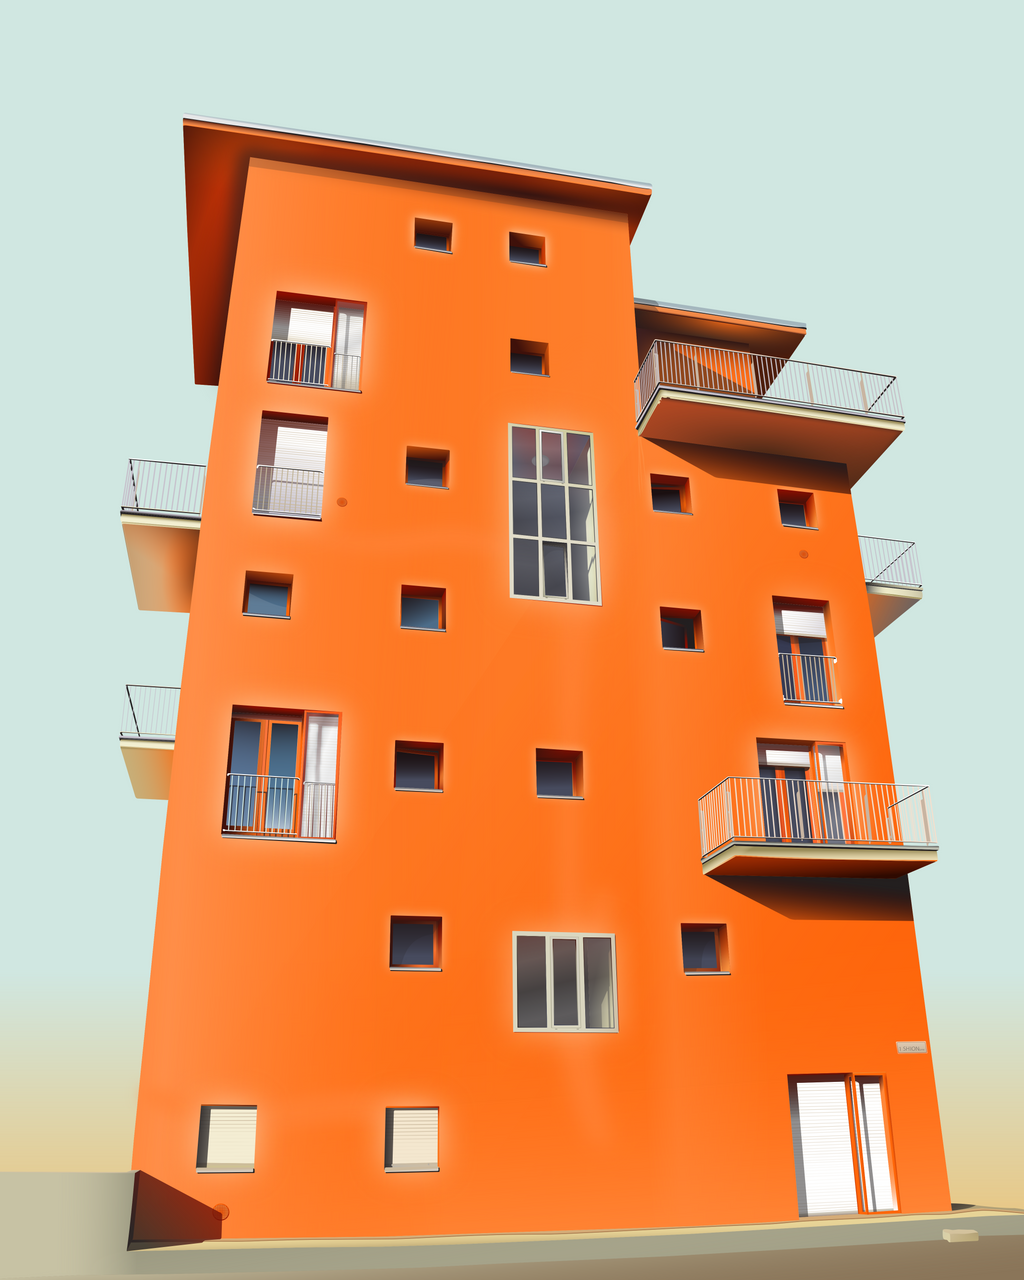 Apartment building illustration apartment building stock for Apartment design vector